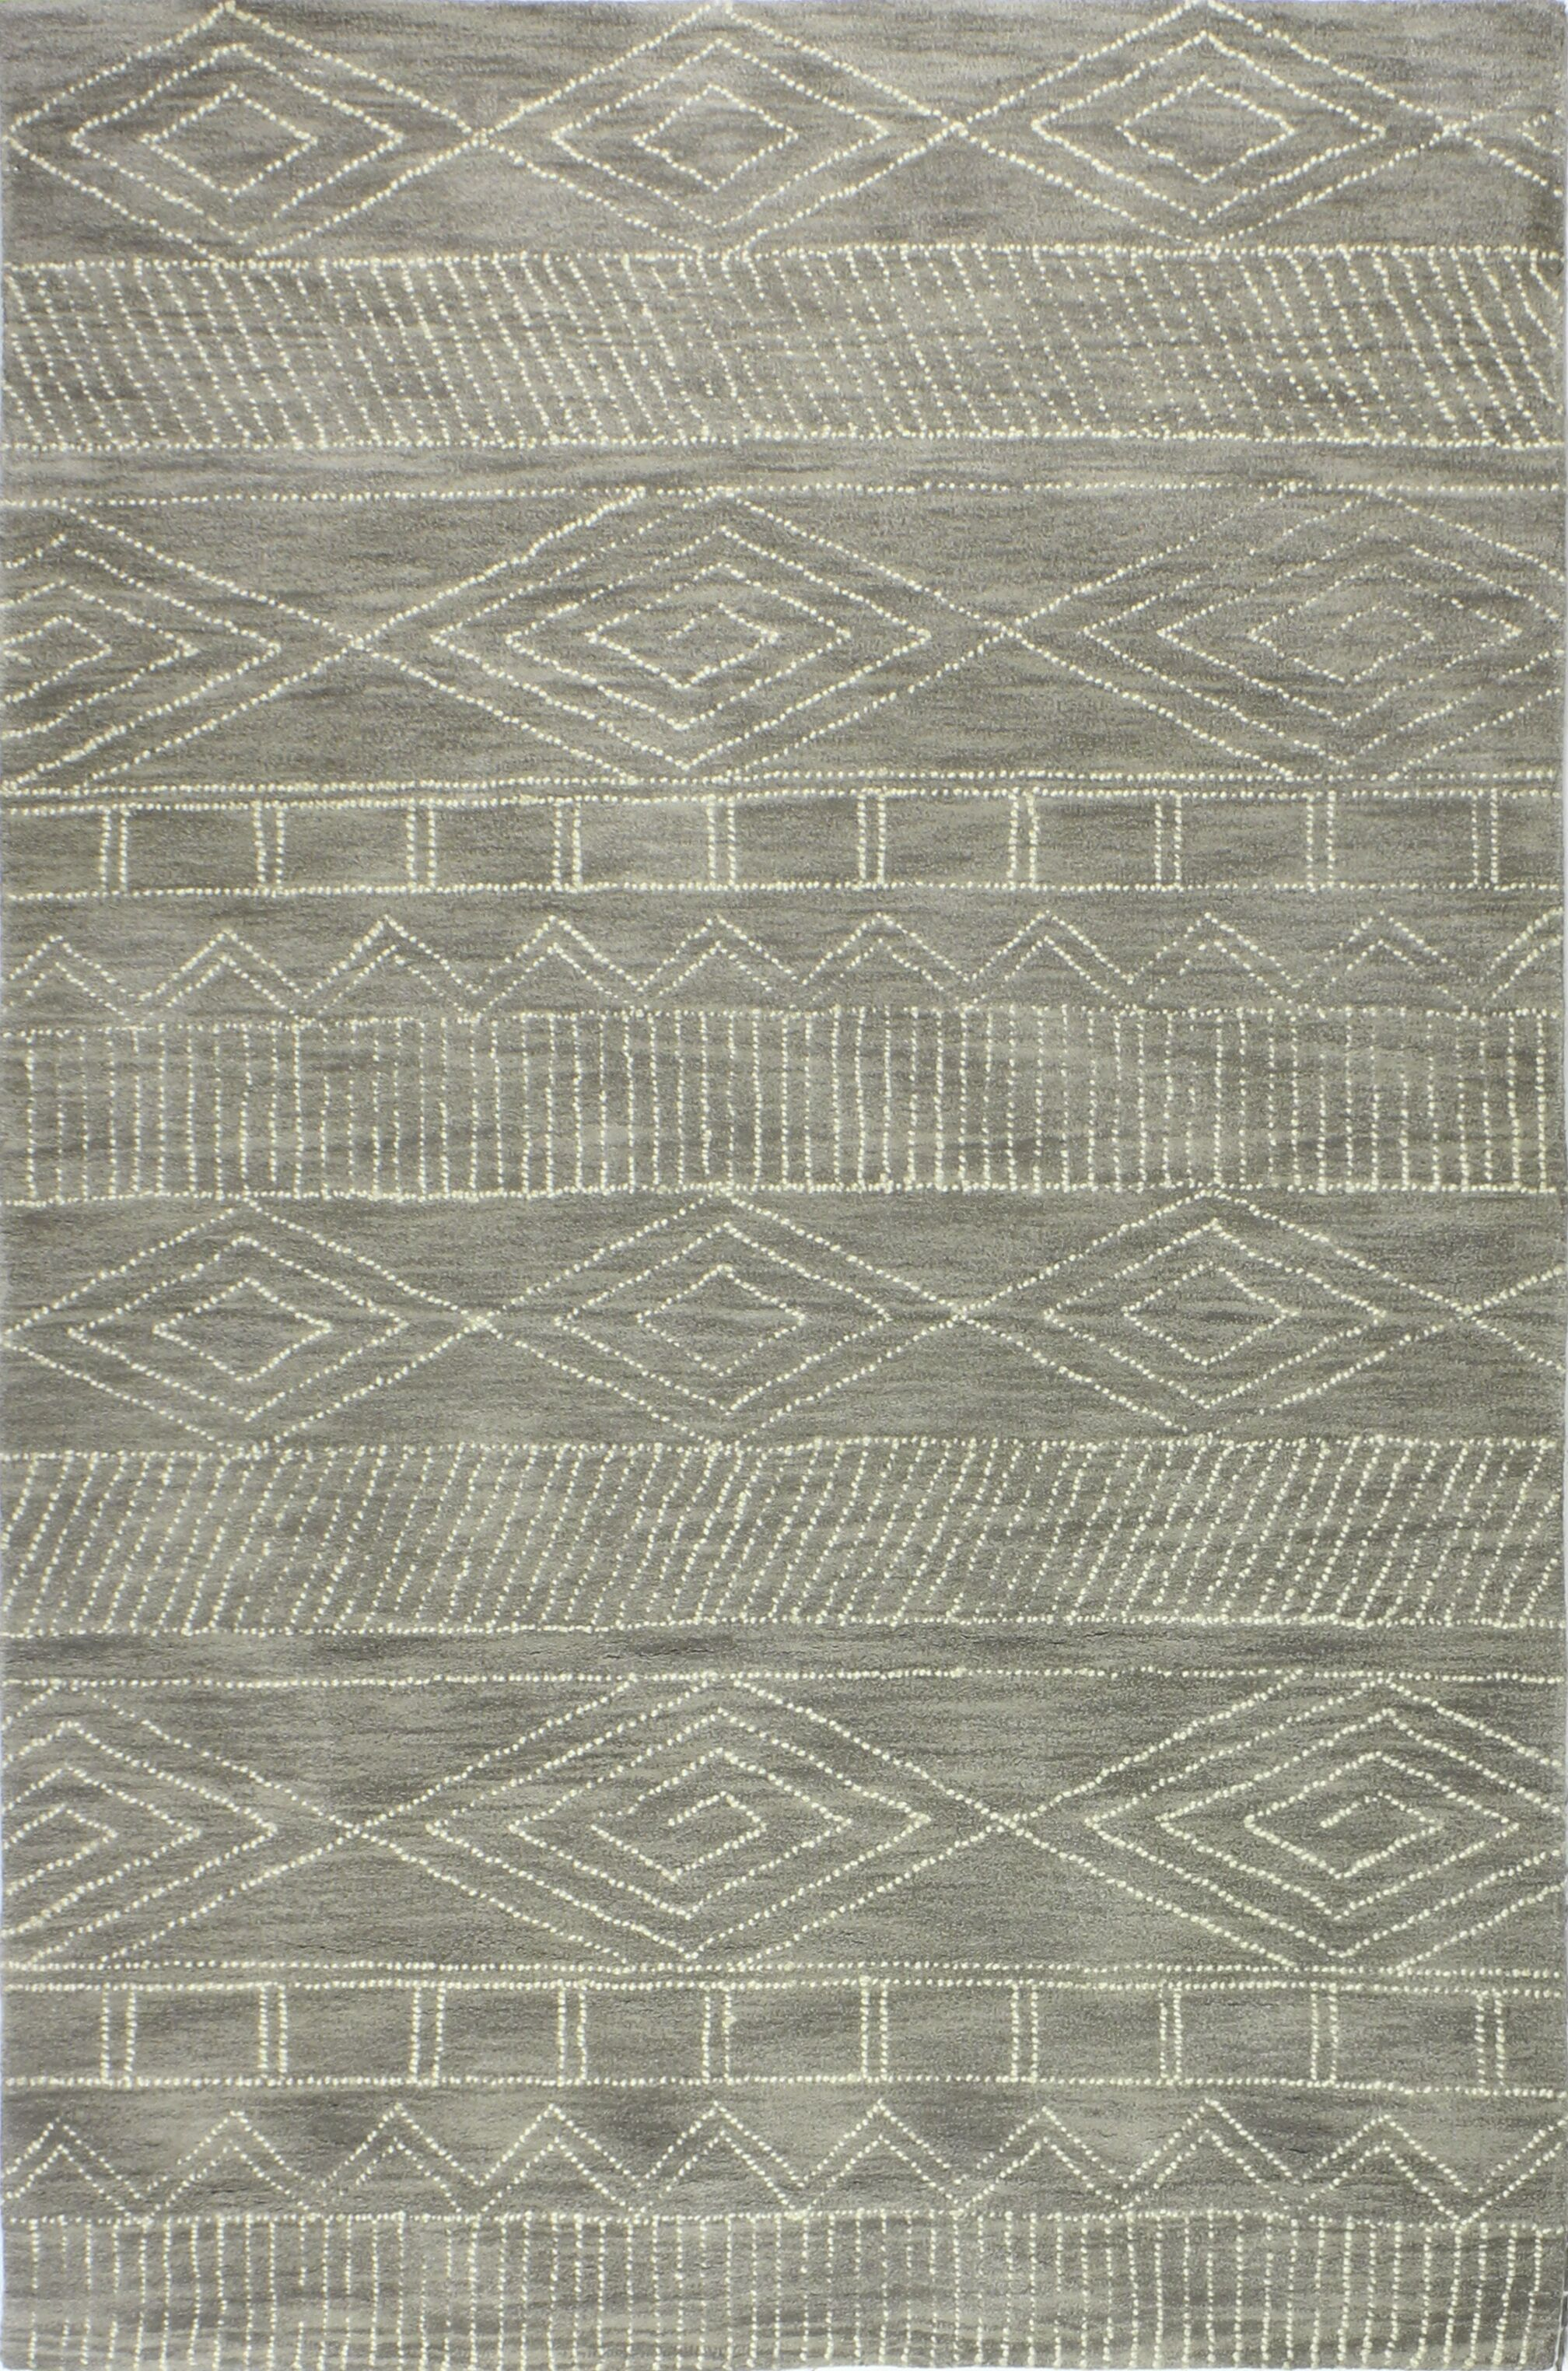 Drihmi Hand Tufted Wool Taupe Area Rug Size: Rectangle 3'6